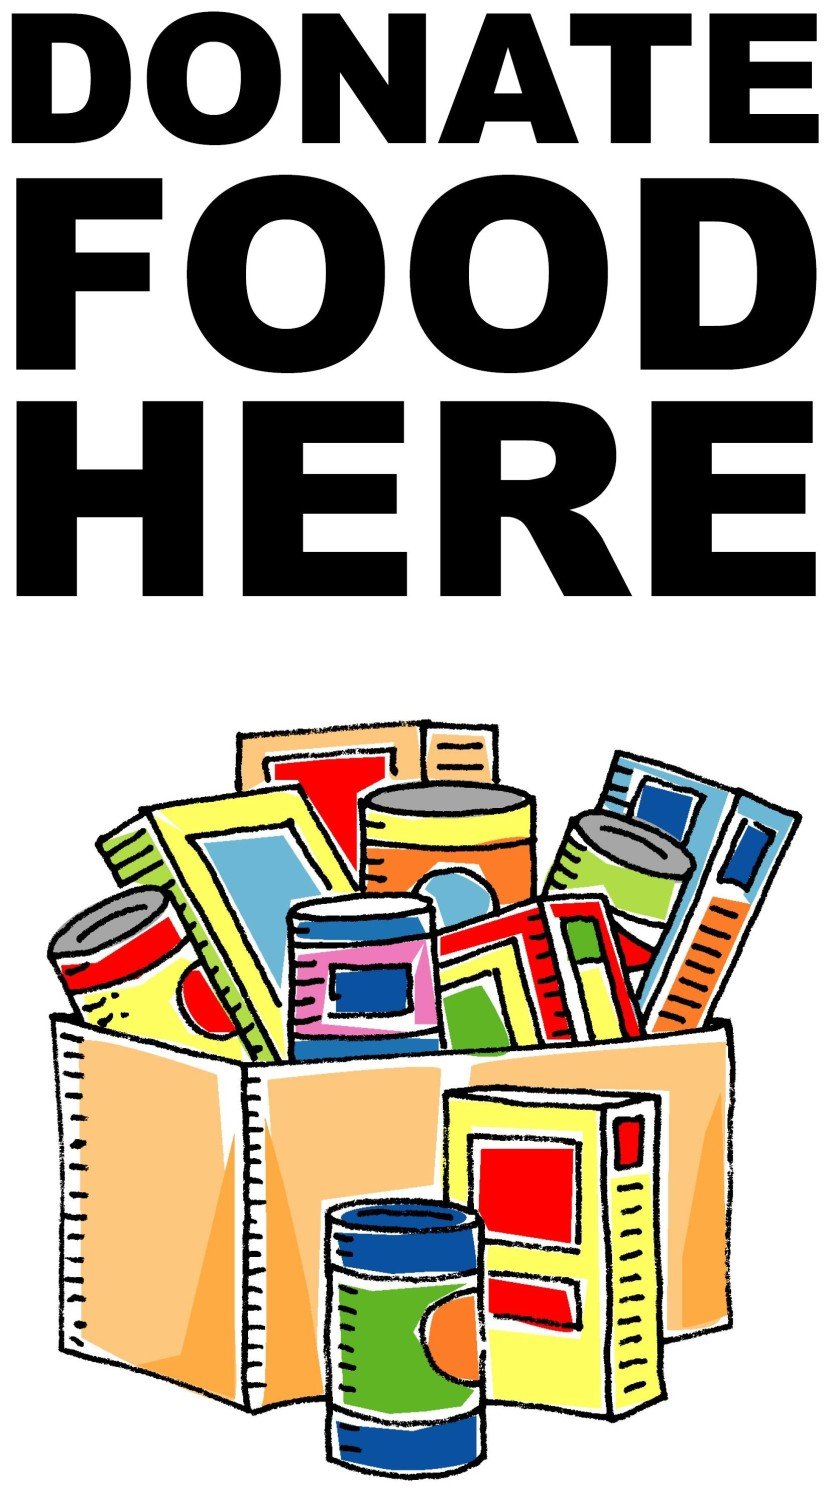 Food Pantry Donations Clipart